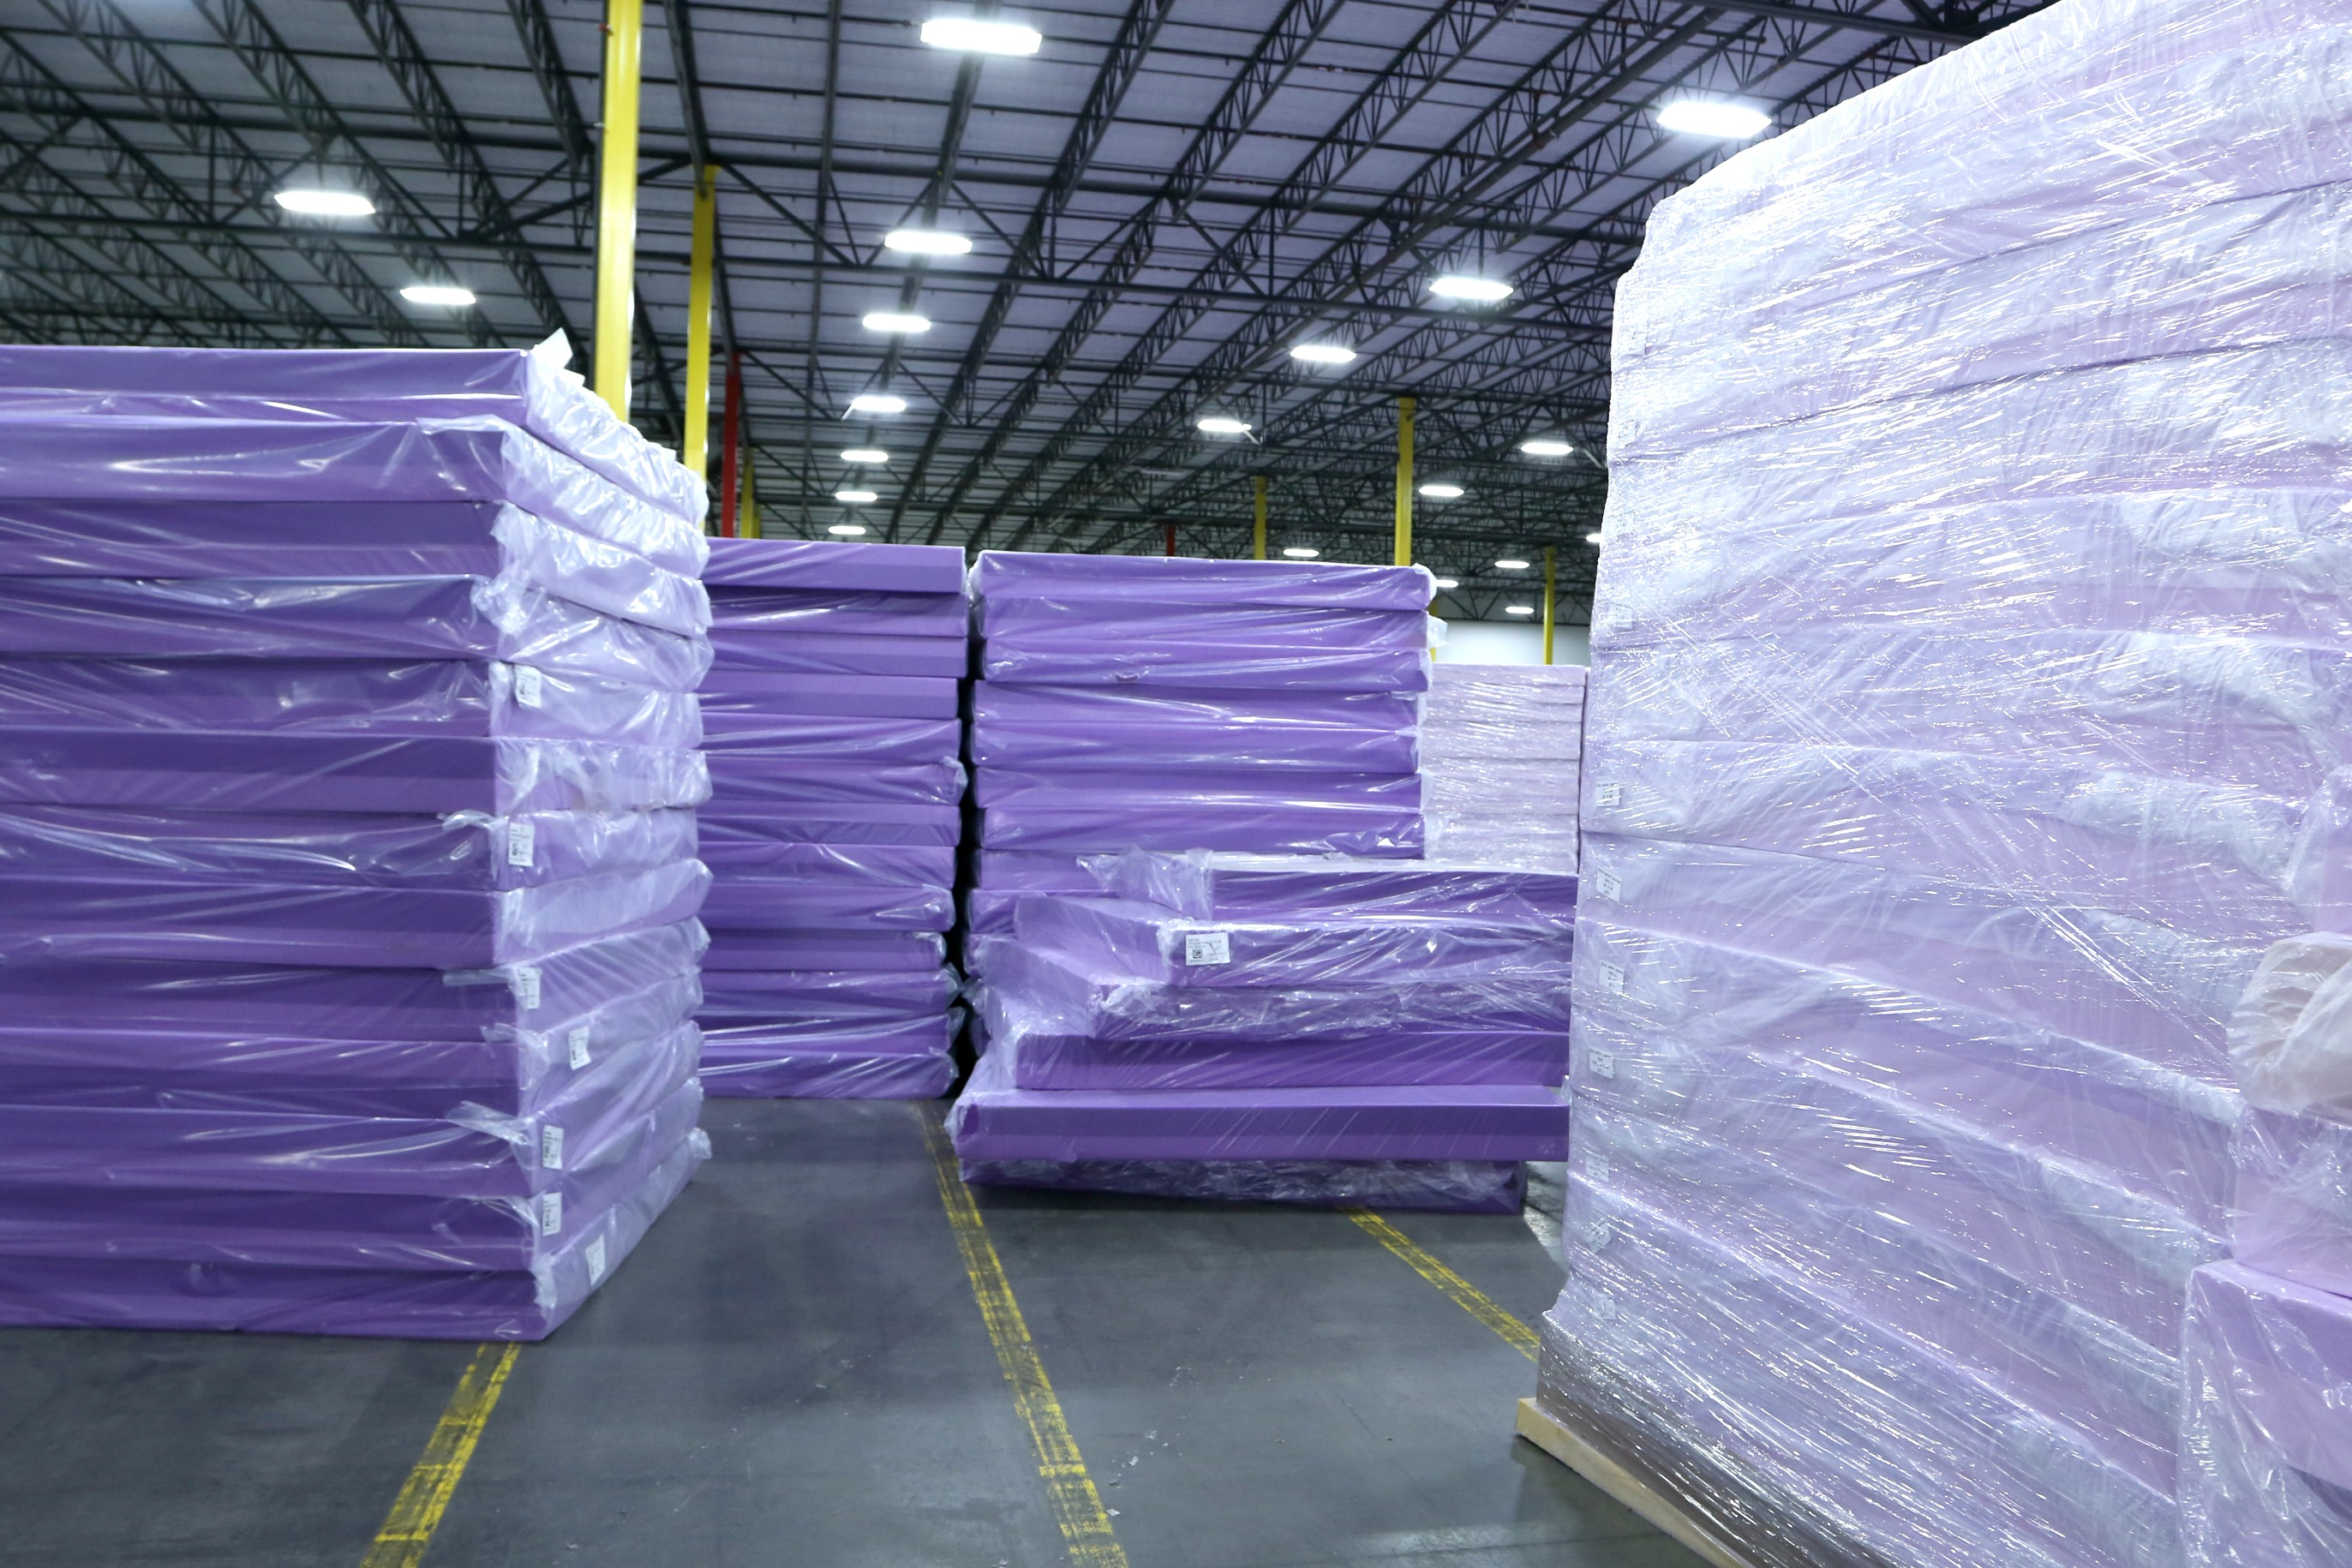 Purple Mattress Review Mattress Startup Purple Launches In 13 Mattress Firm Store